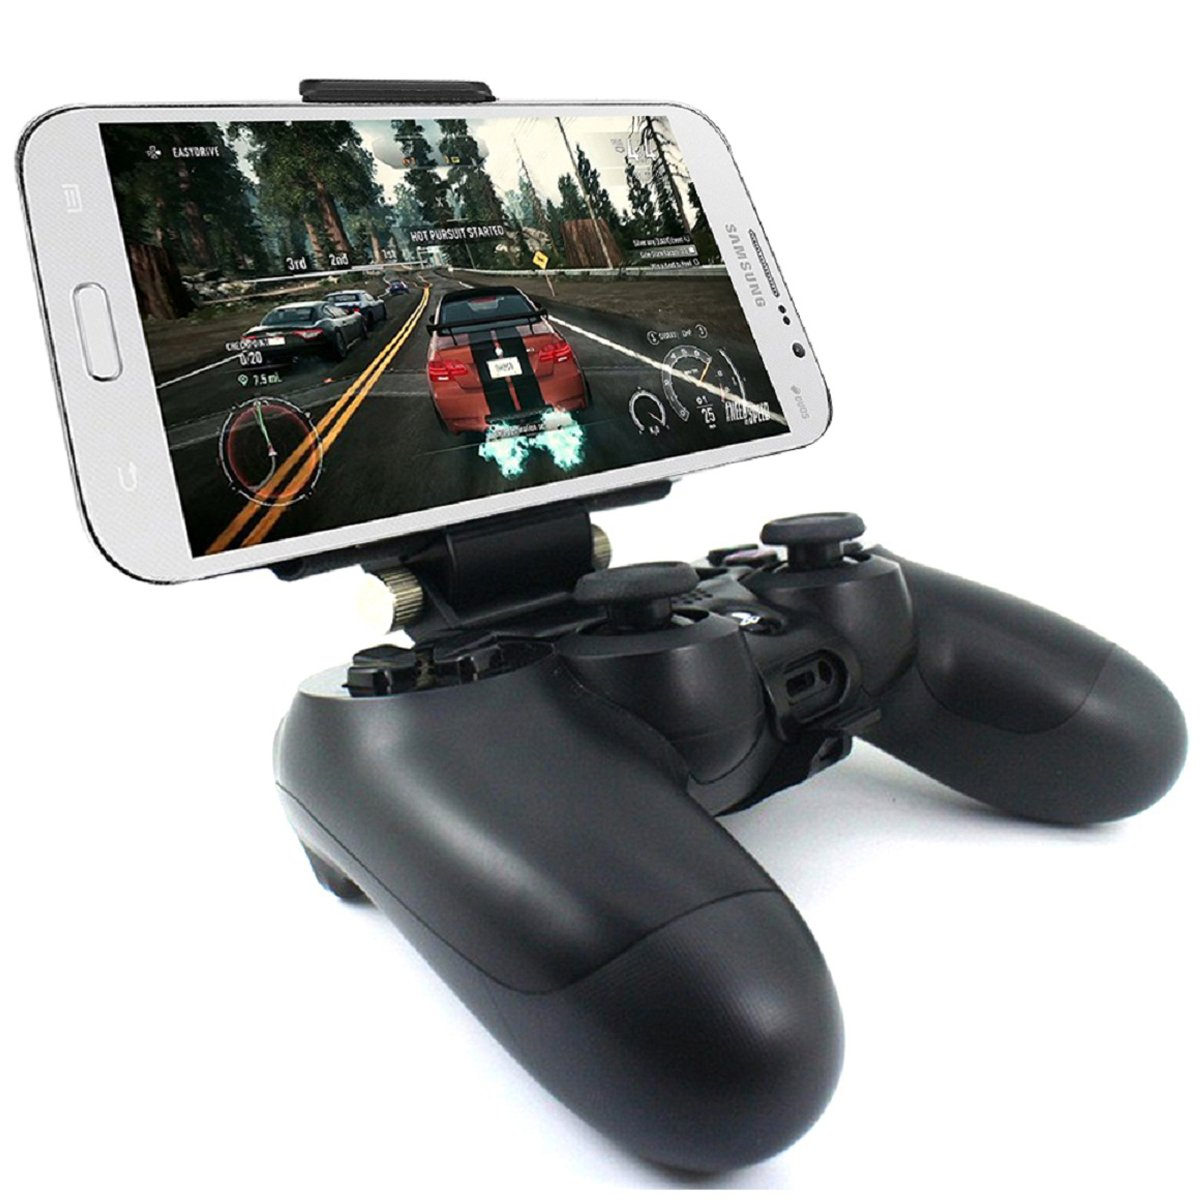 Megadream [2Nd Generation] Ps4 Controller Phone Clip Holder For Sony Playstation 4 PS4 Pro Slim, 180 Degree Adjustable Mount Stand Android Samsung Galaxy S8 S8+ S7 Edge S7 S6 Note 8 6 Maximum 7.9Inch